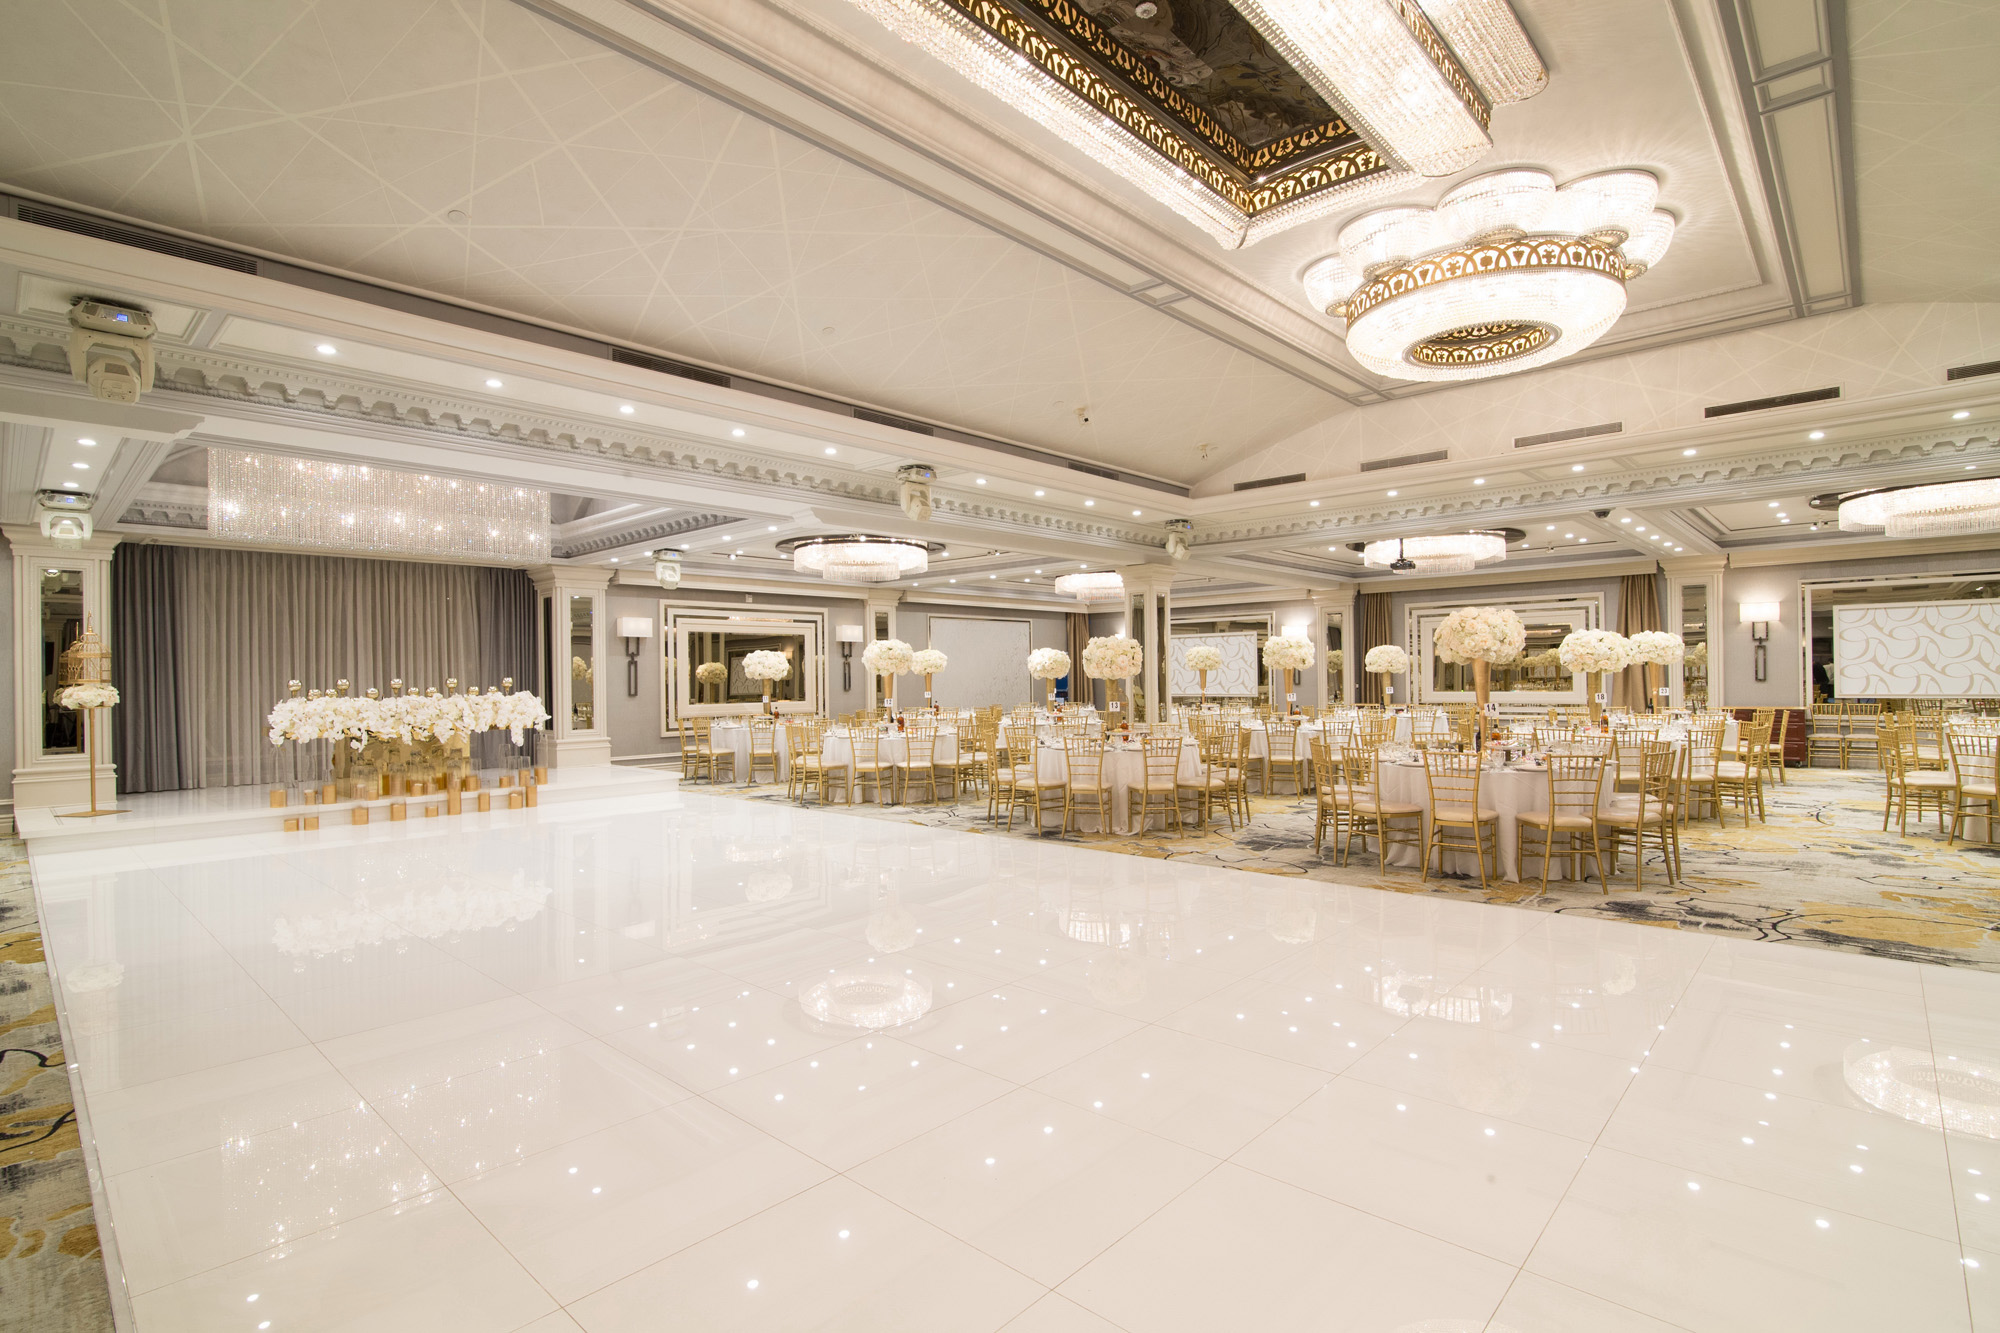 Contemporary Event & Wedding Venues in Glendale, CA - Glenoaks Ballroom